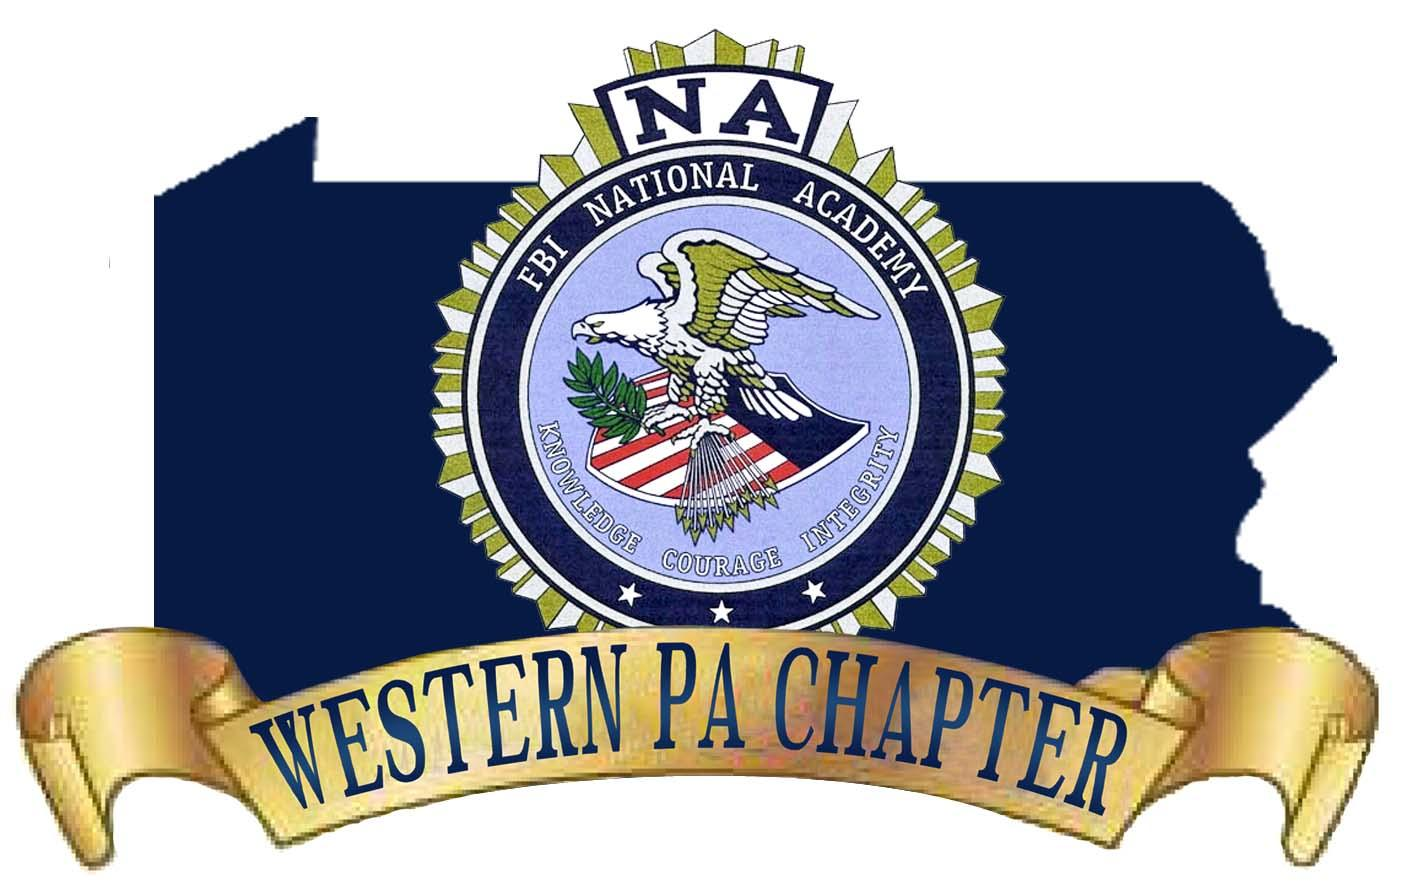 Western Pennsylvania Chapter Steak Fry